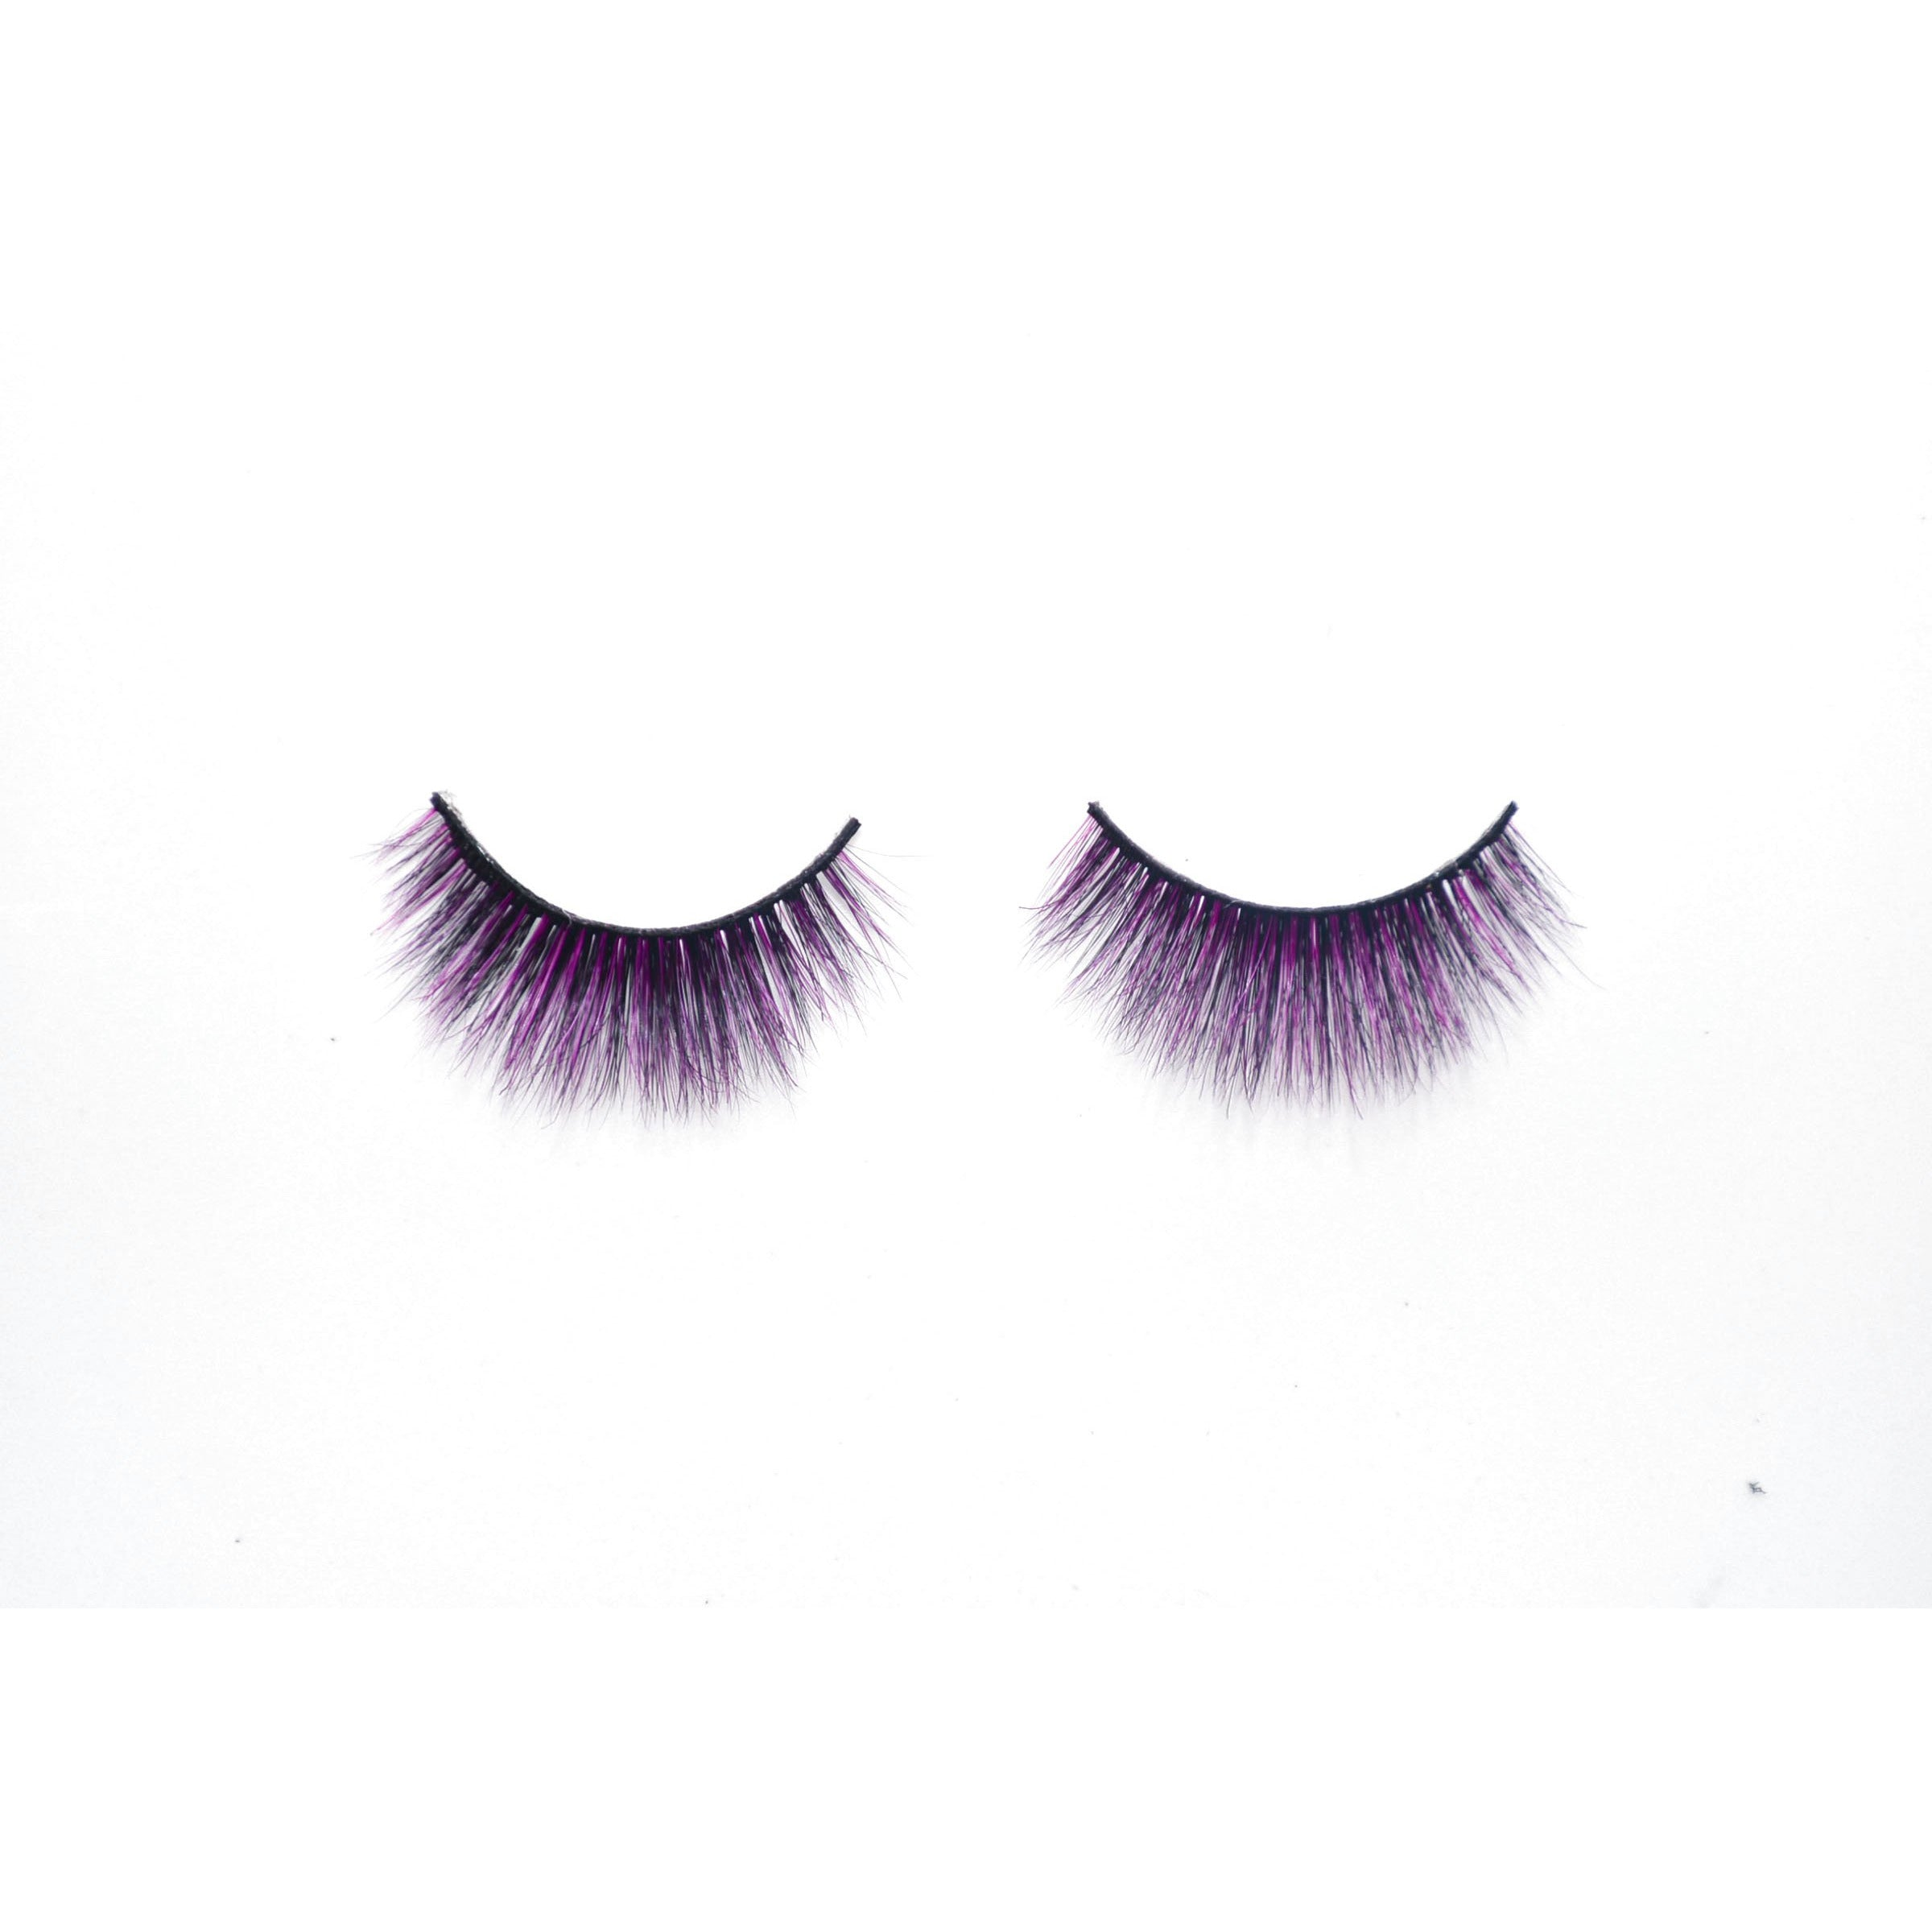 Karib dolls Real 3D Mink Lashes Black/Purple (Dawn)